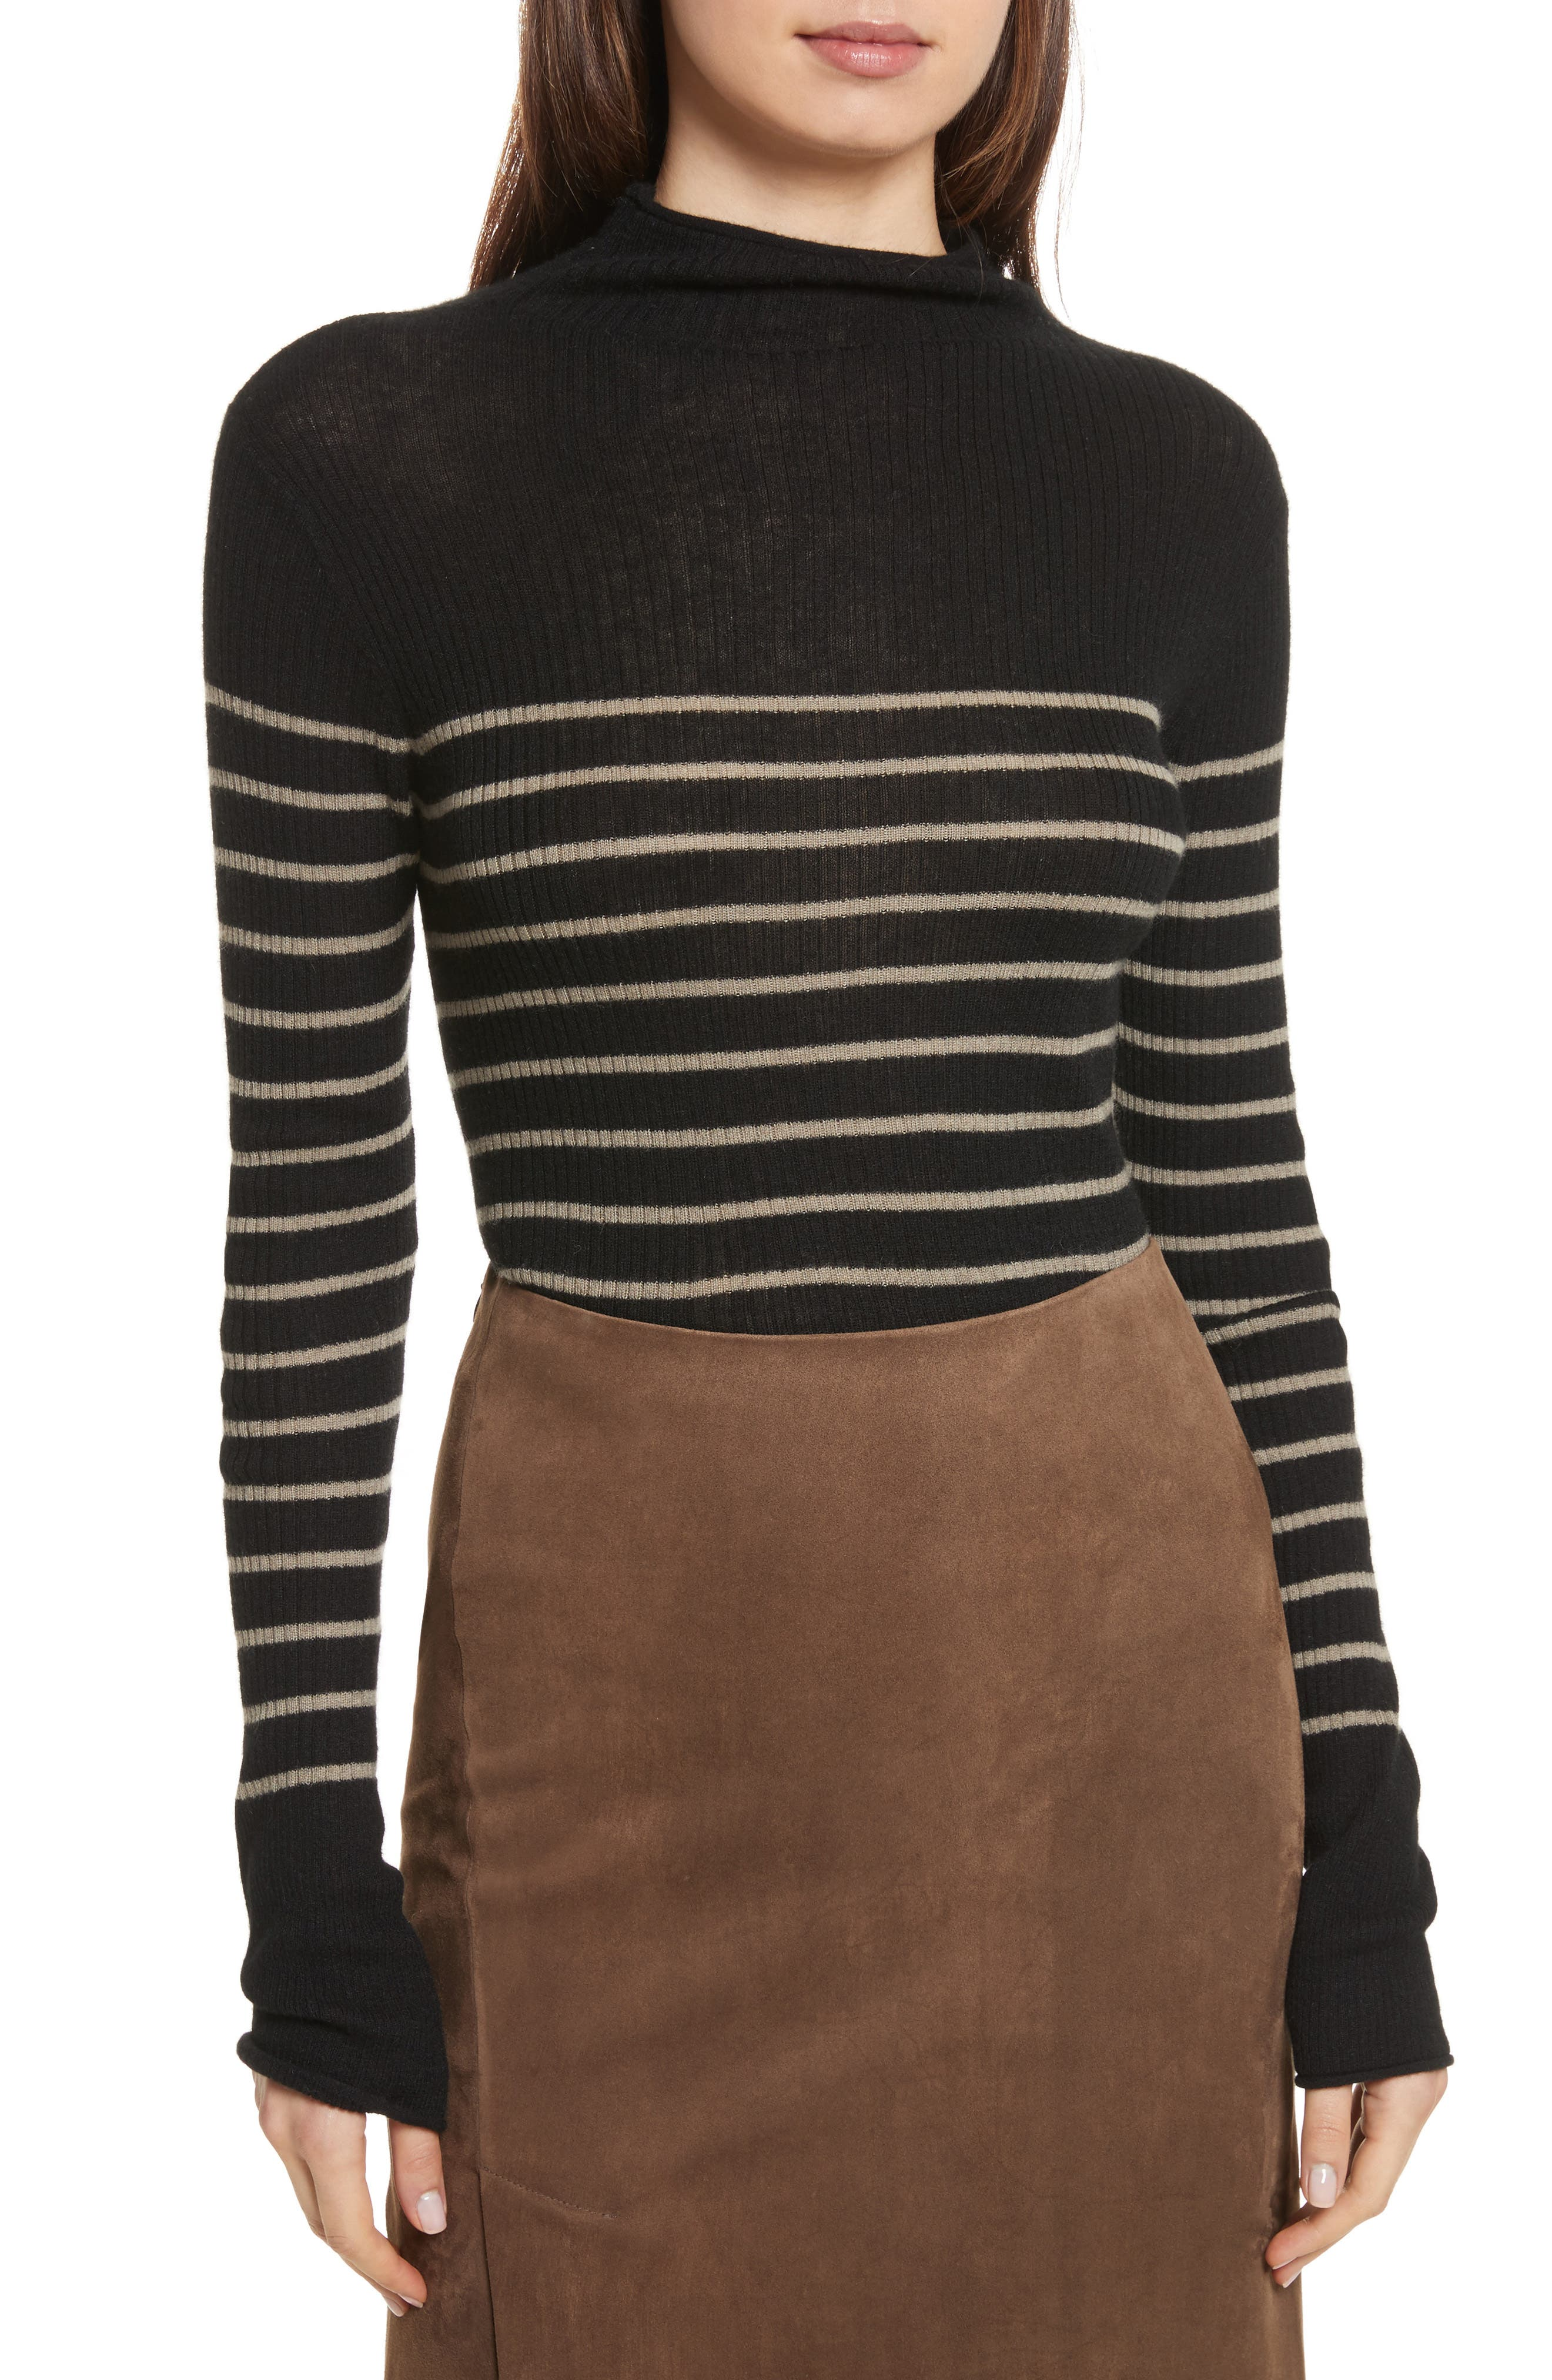 Stripe Ribbed Cashmere Sweater,                         Main,                         color, Black/ Pebble Taupe